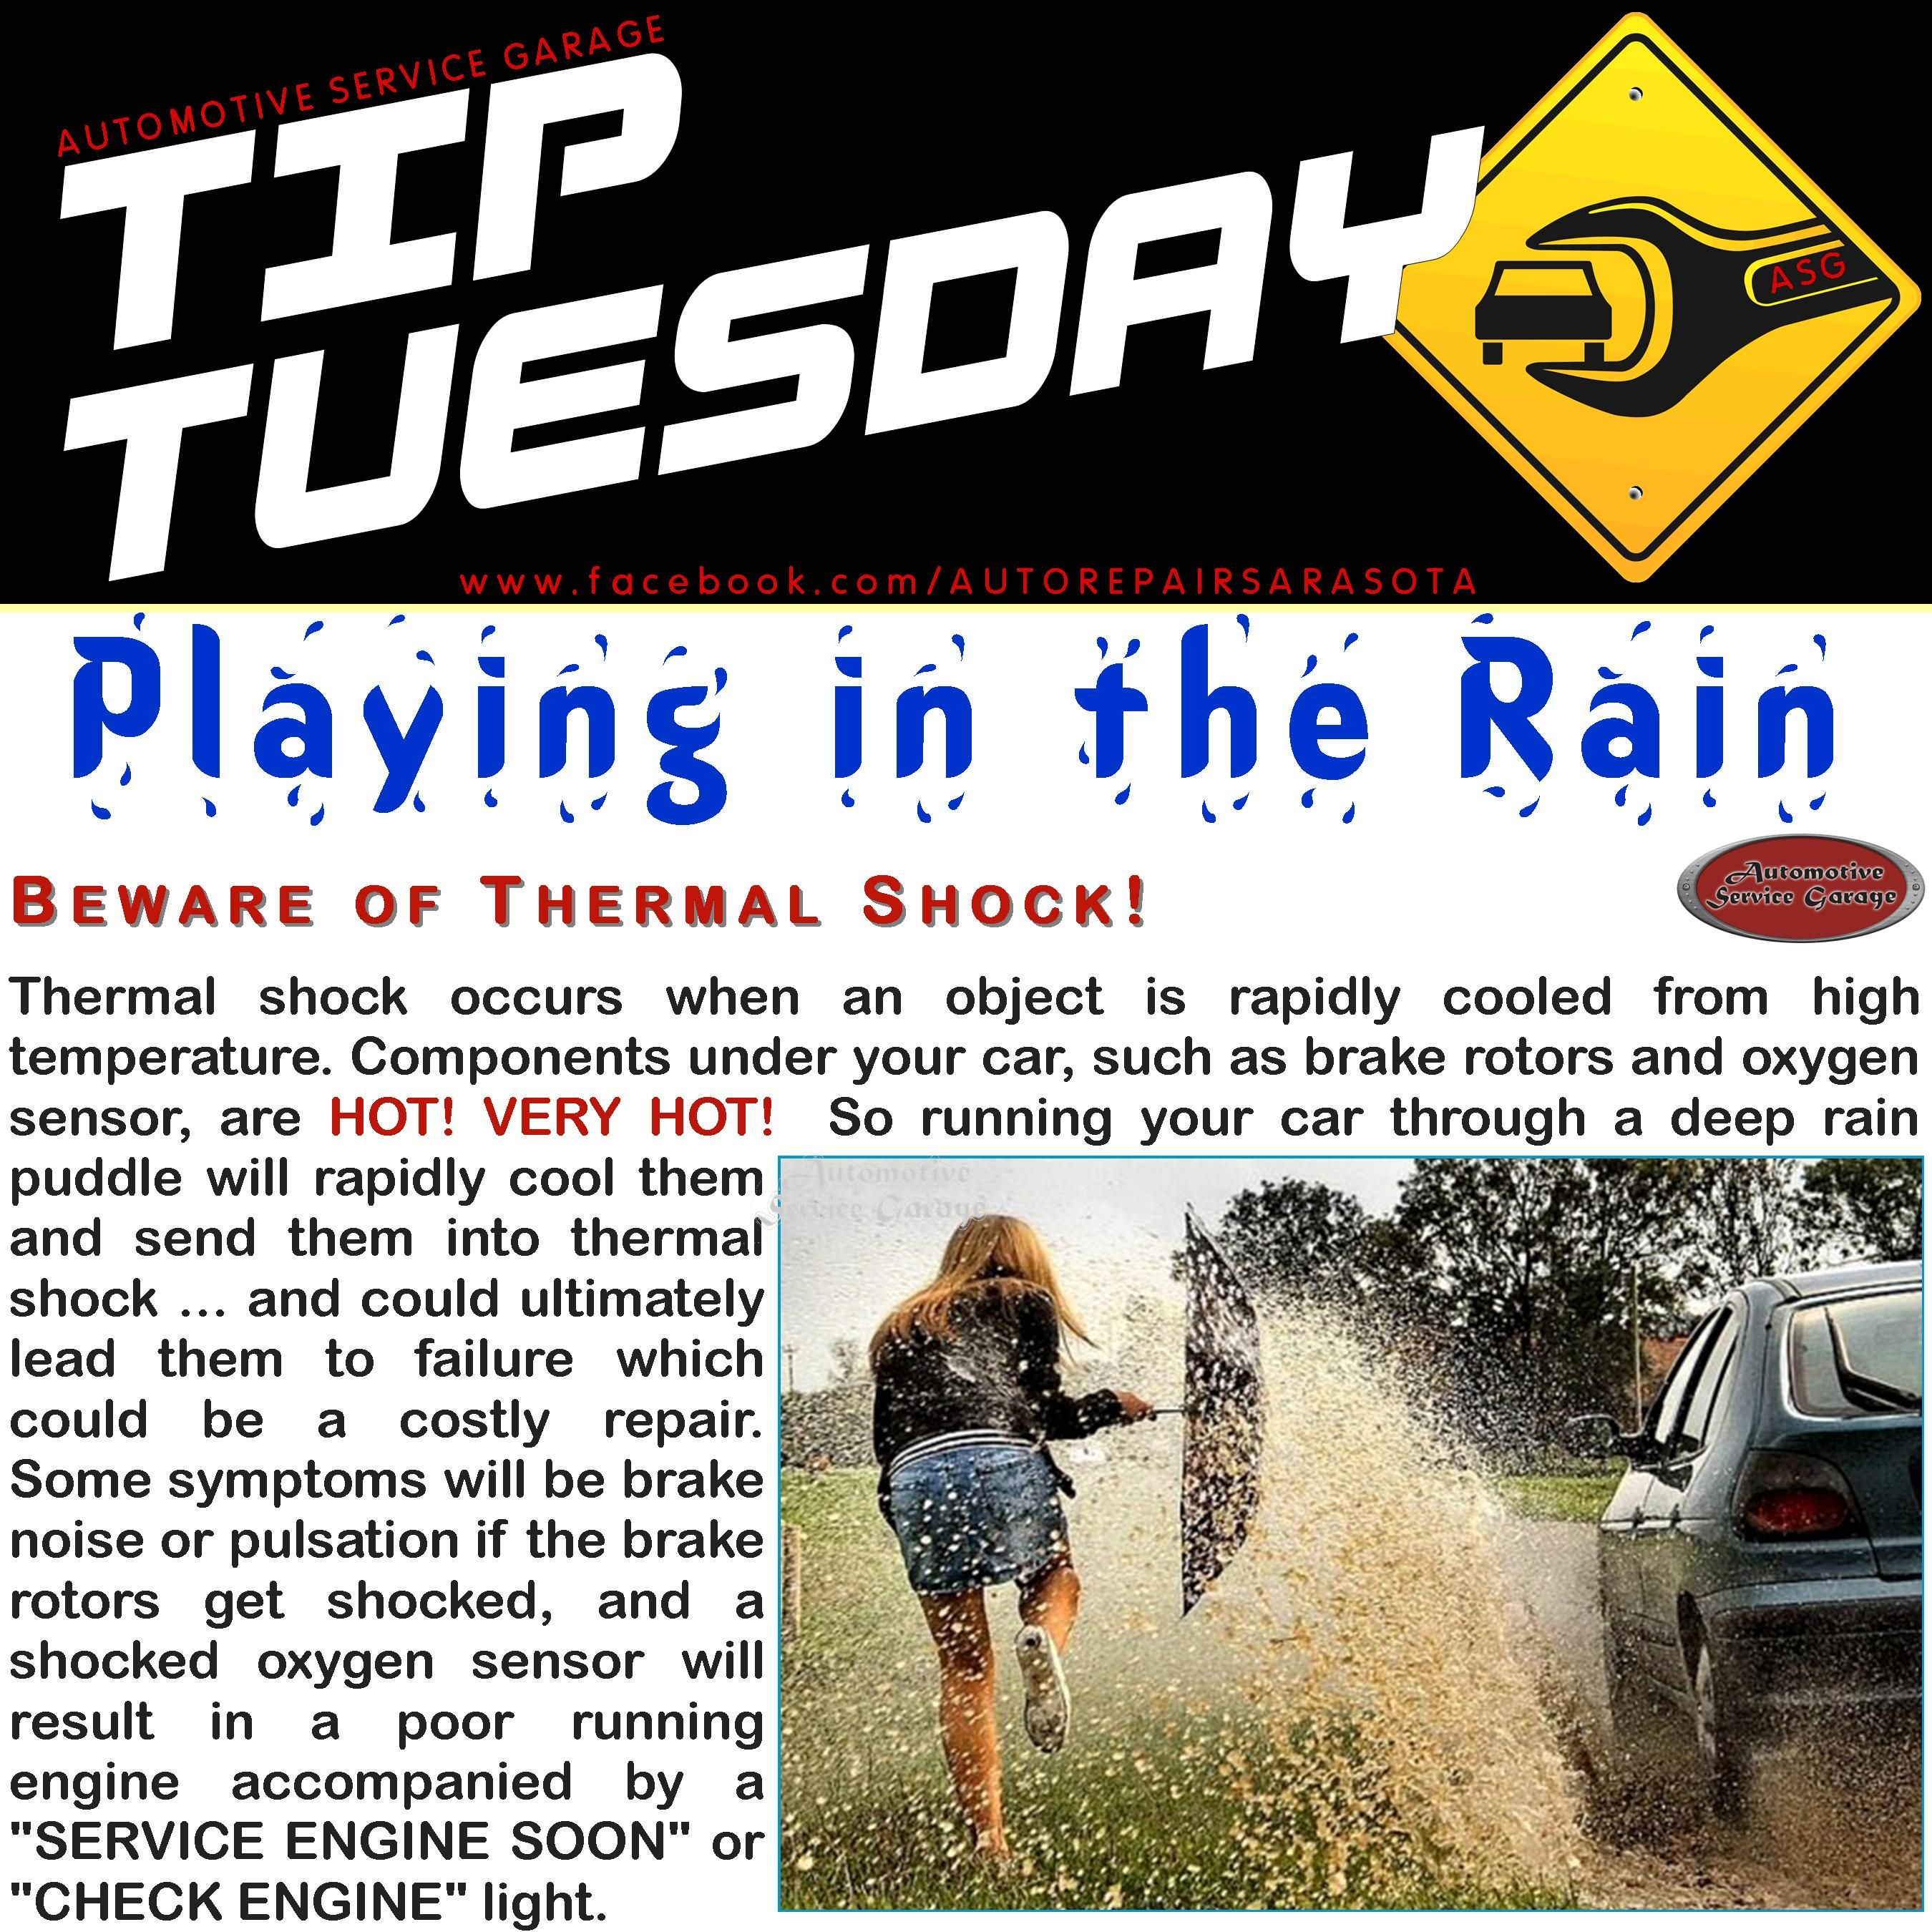 Car care tip avoid driving through a deep puddle the